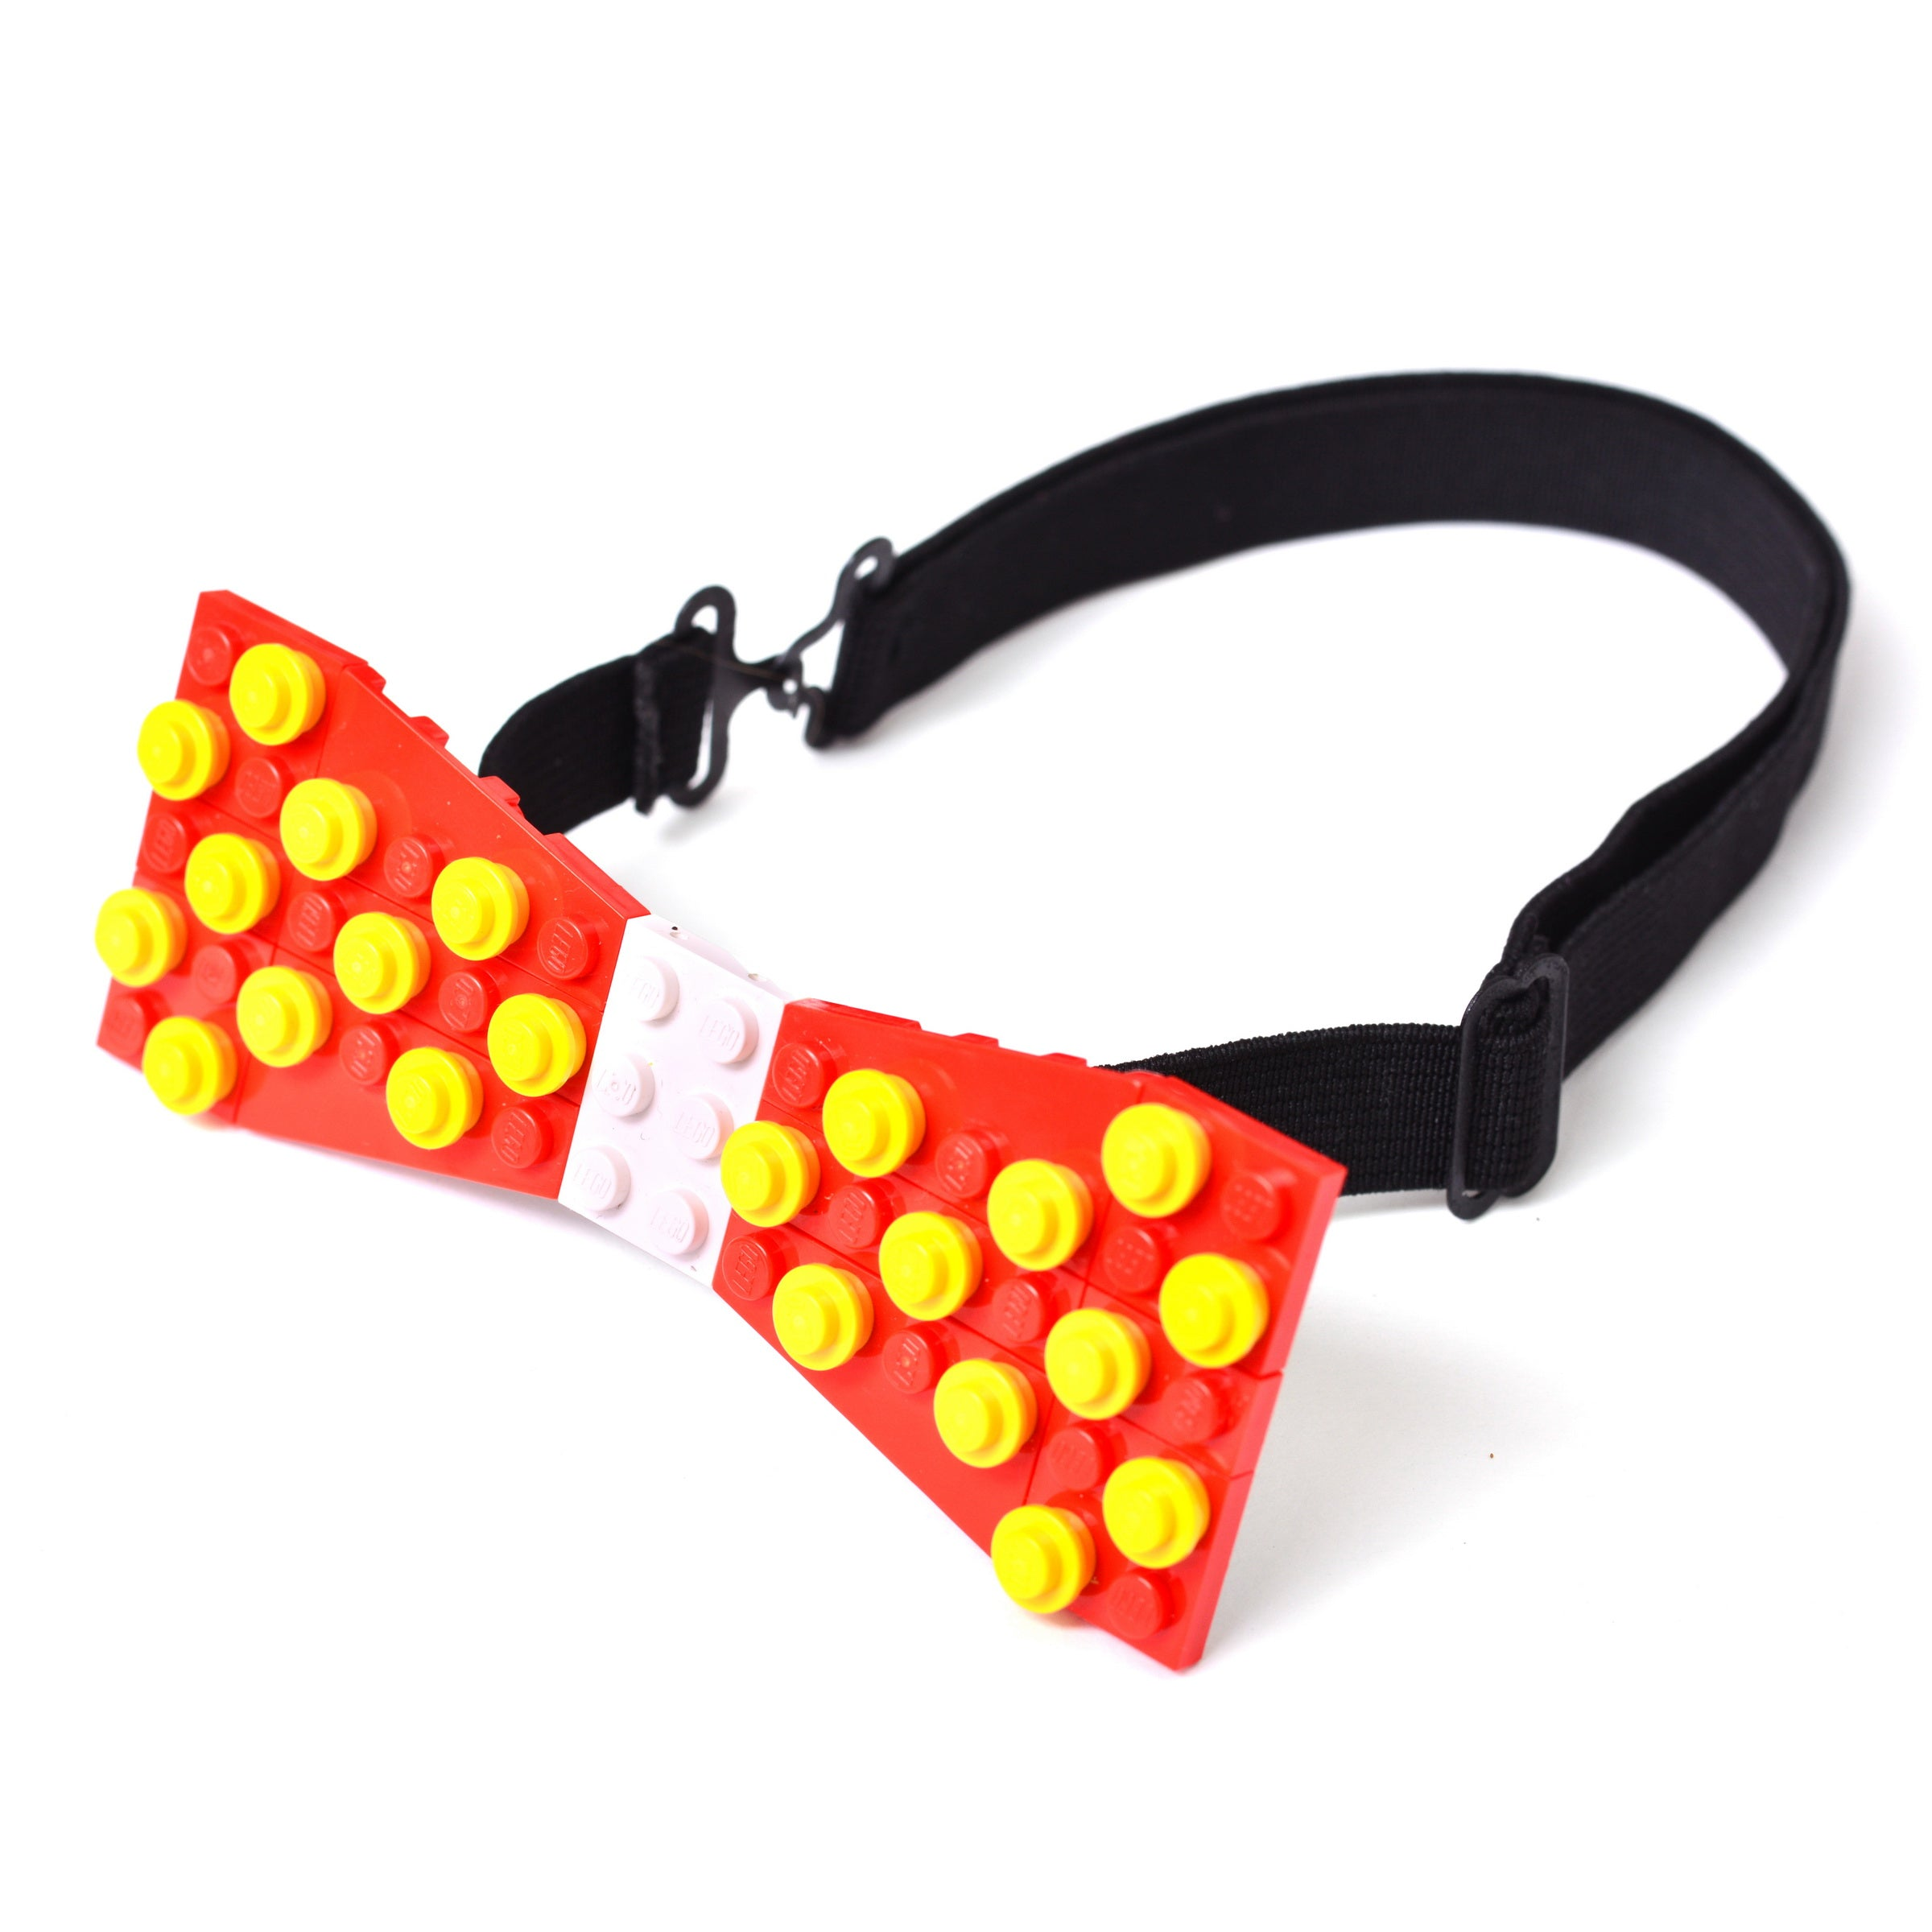 Red with white center and yellow dots